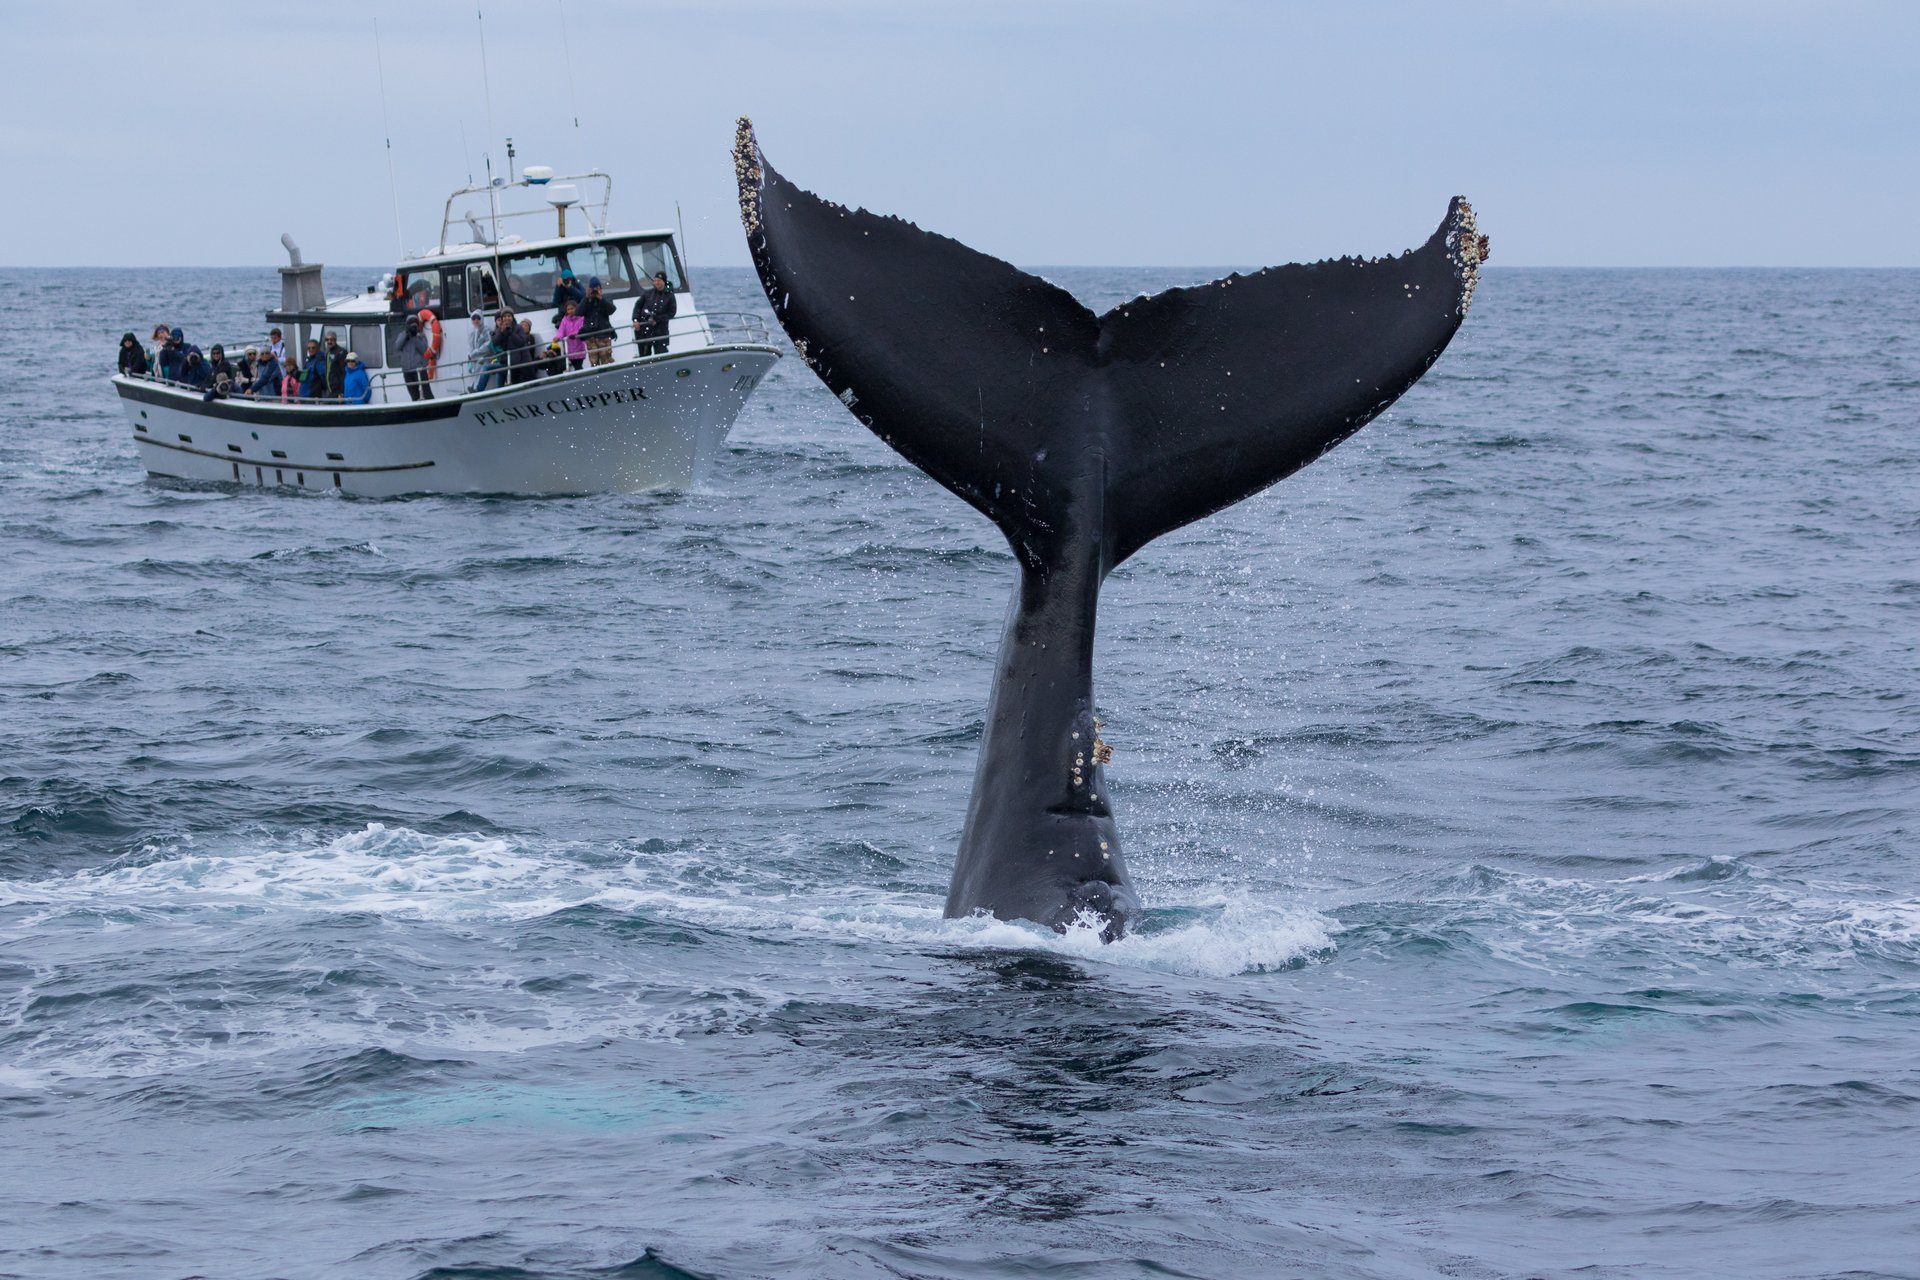 Monterey Bay Whale Watch tour 2020